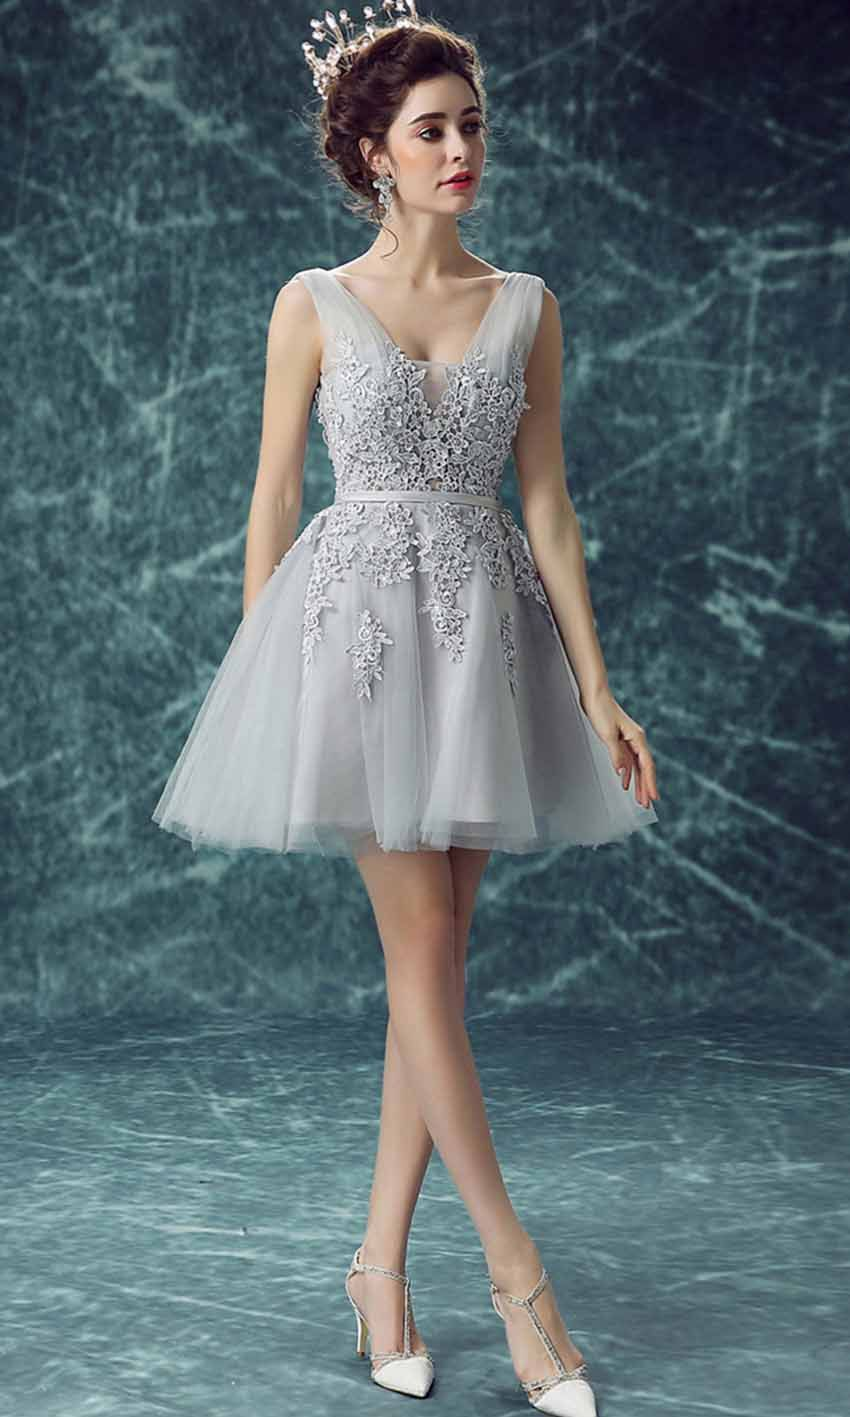 Grey Short Prom Dresses with Applique Lace Up KSP452 | Short prom ...